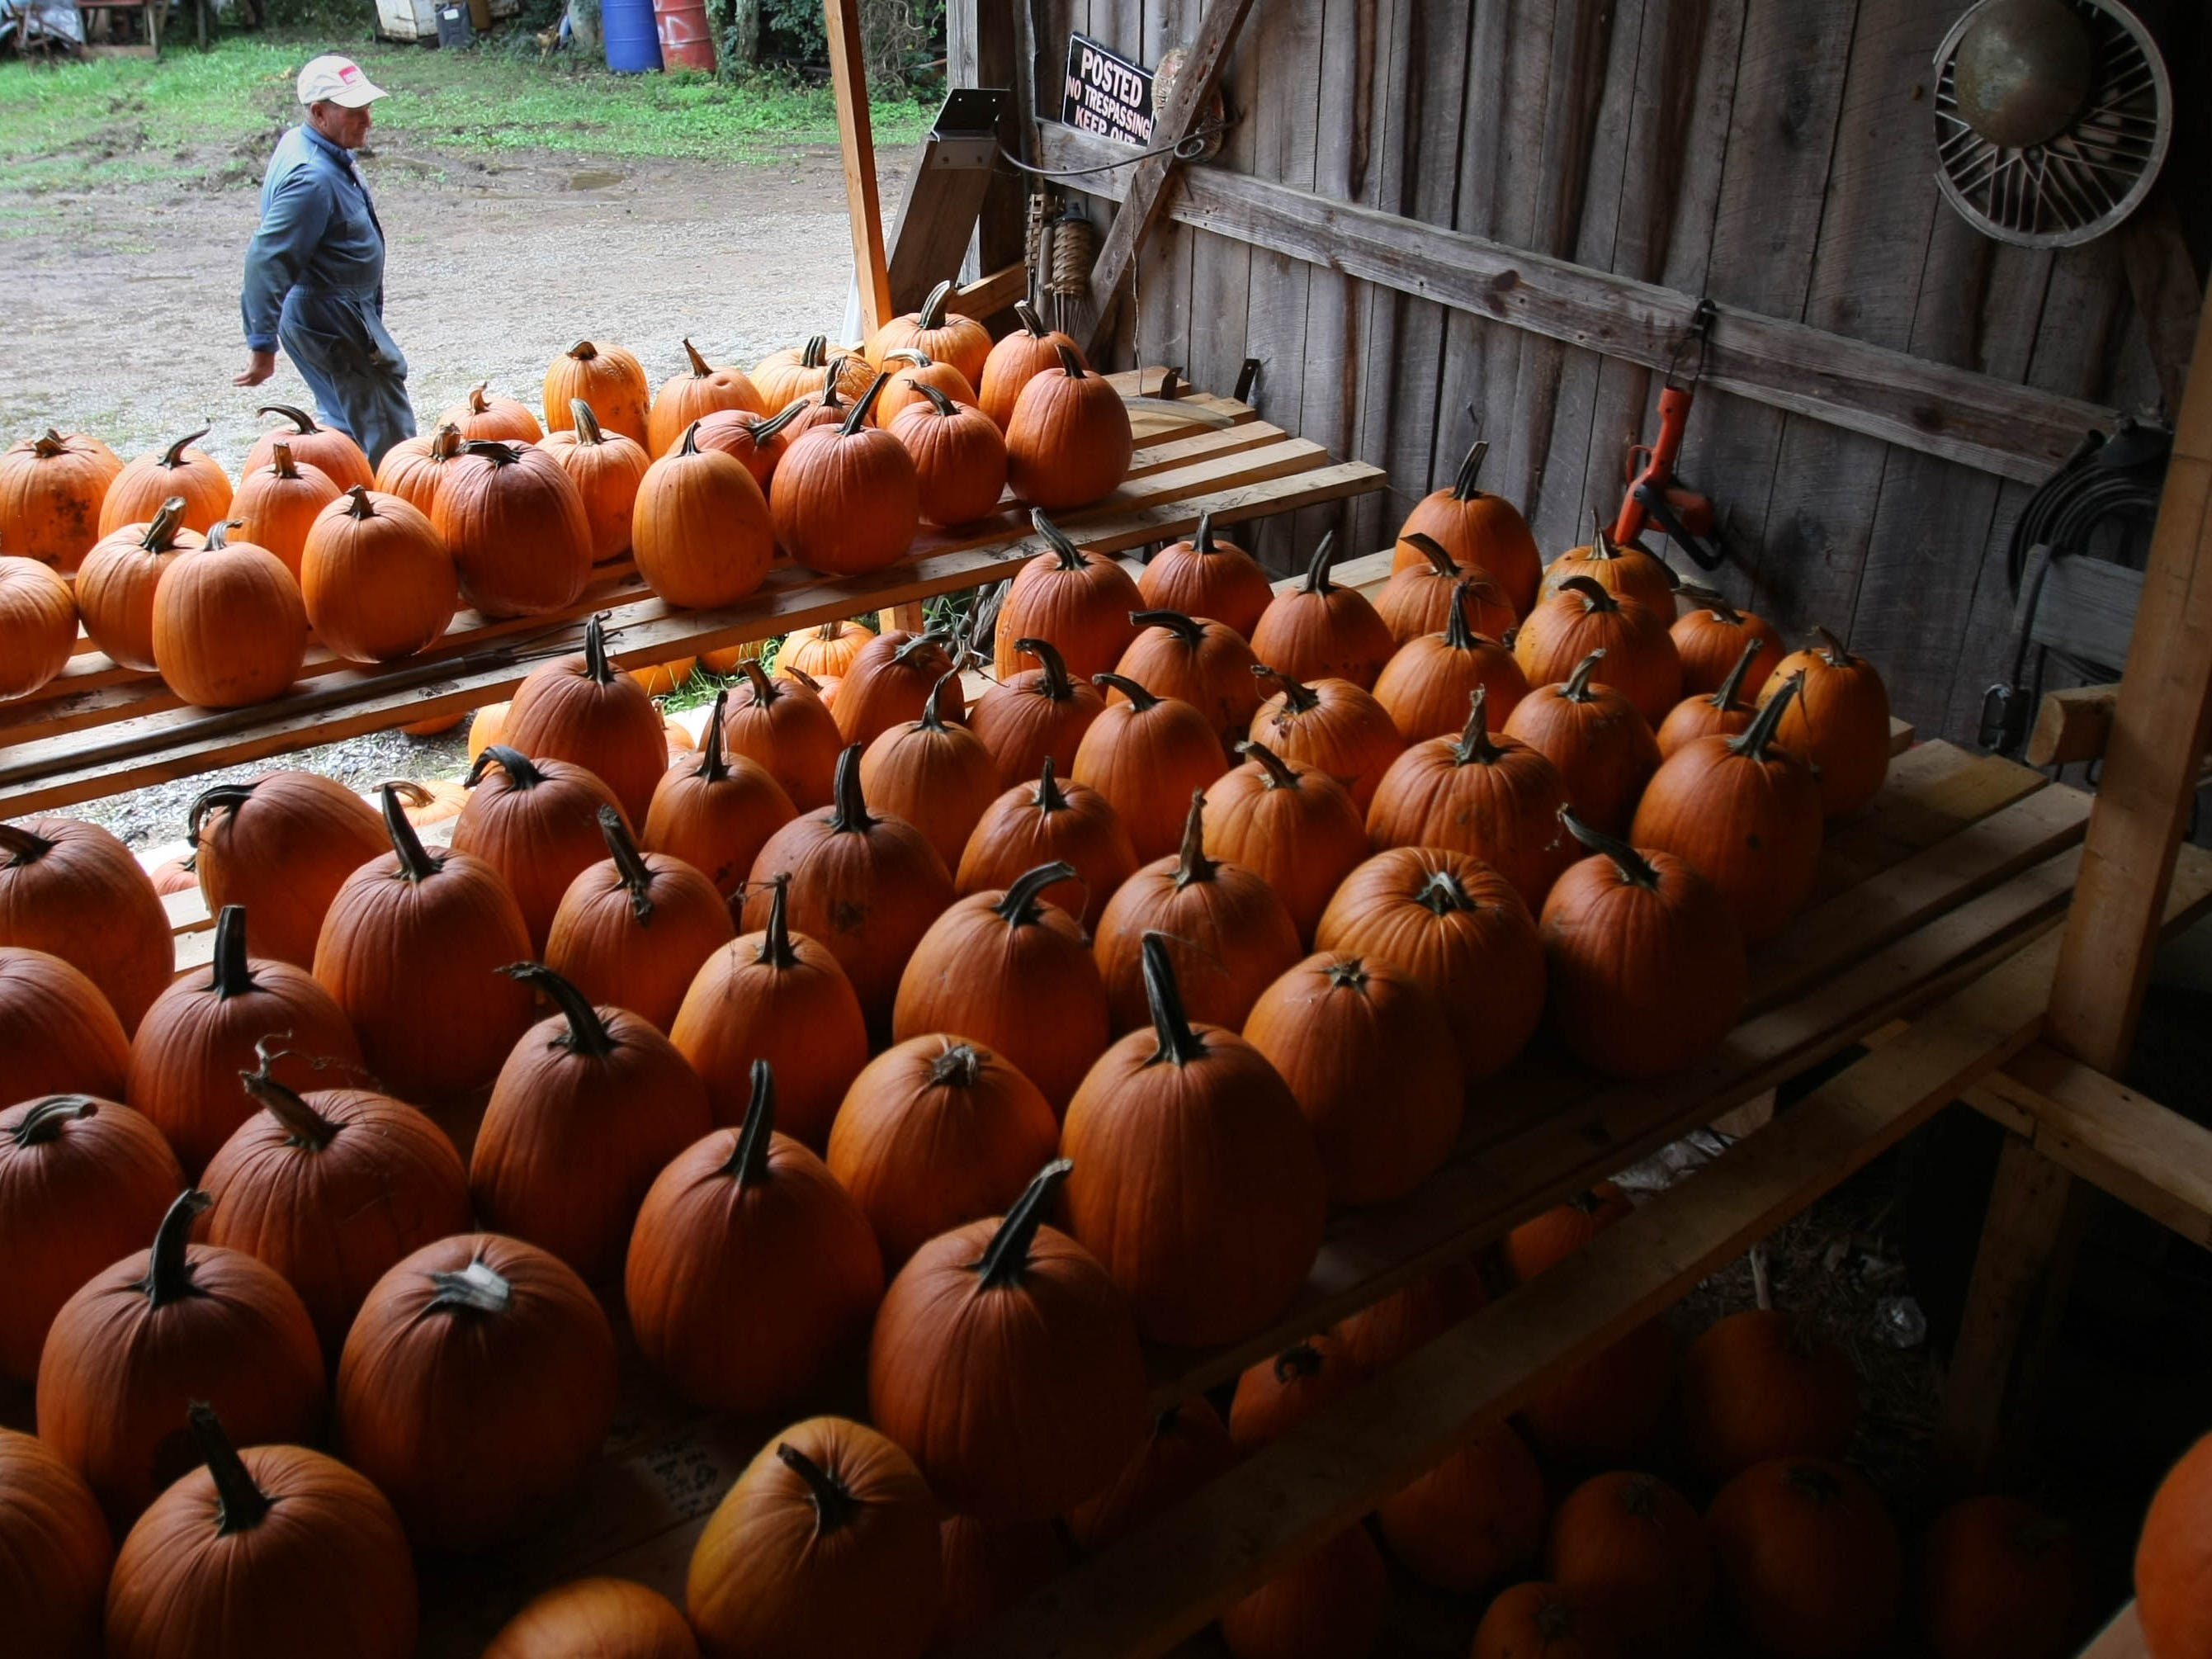 Johnny Hicklen of Hicklen Farms in Nolensville walks by one of his barns  where he stores his pumpkins.